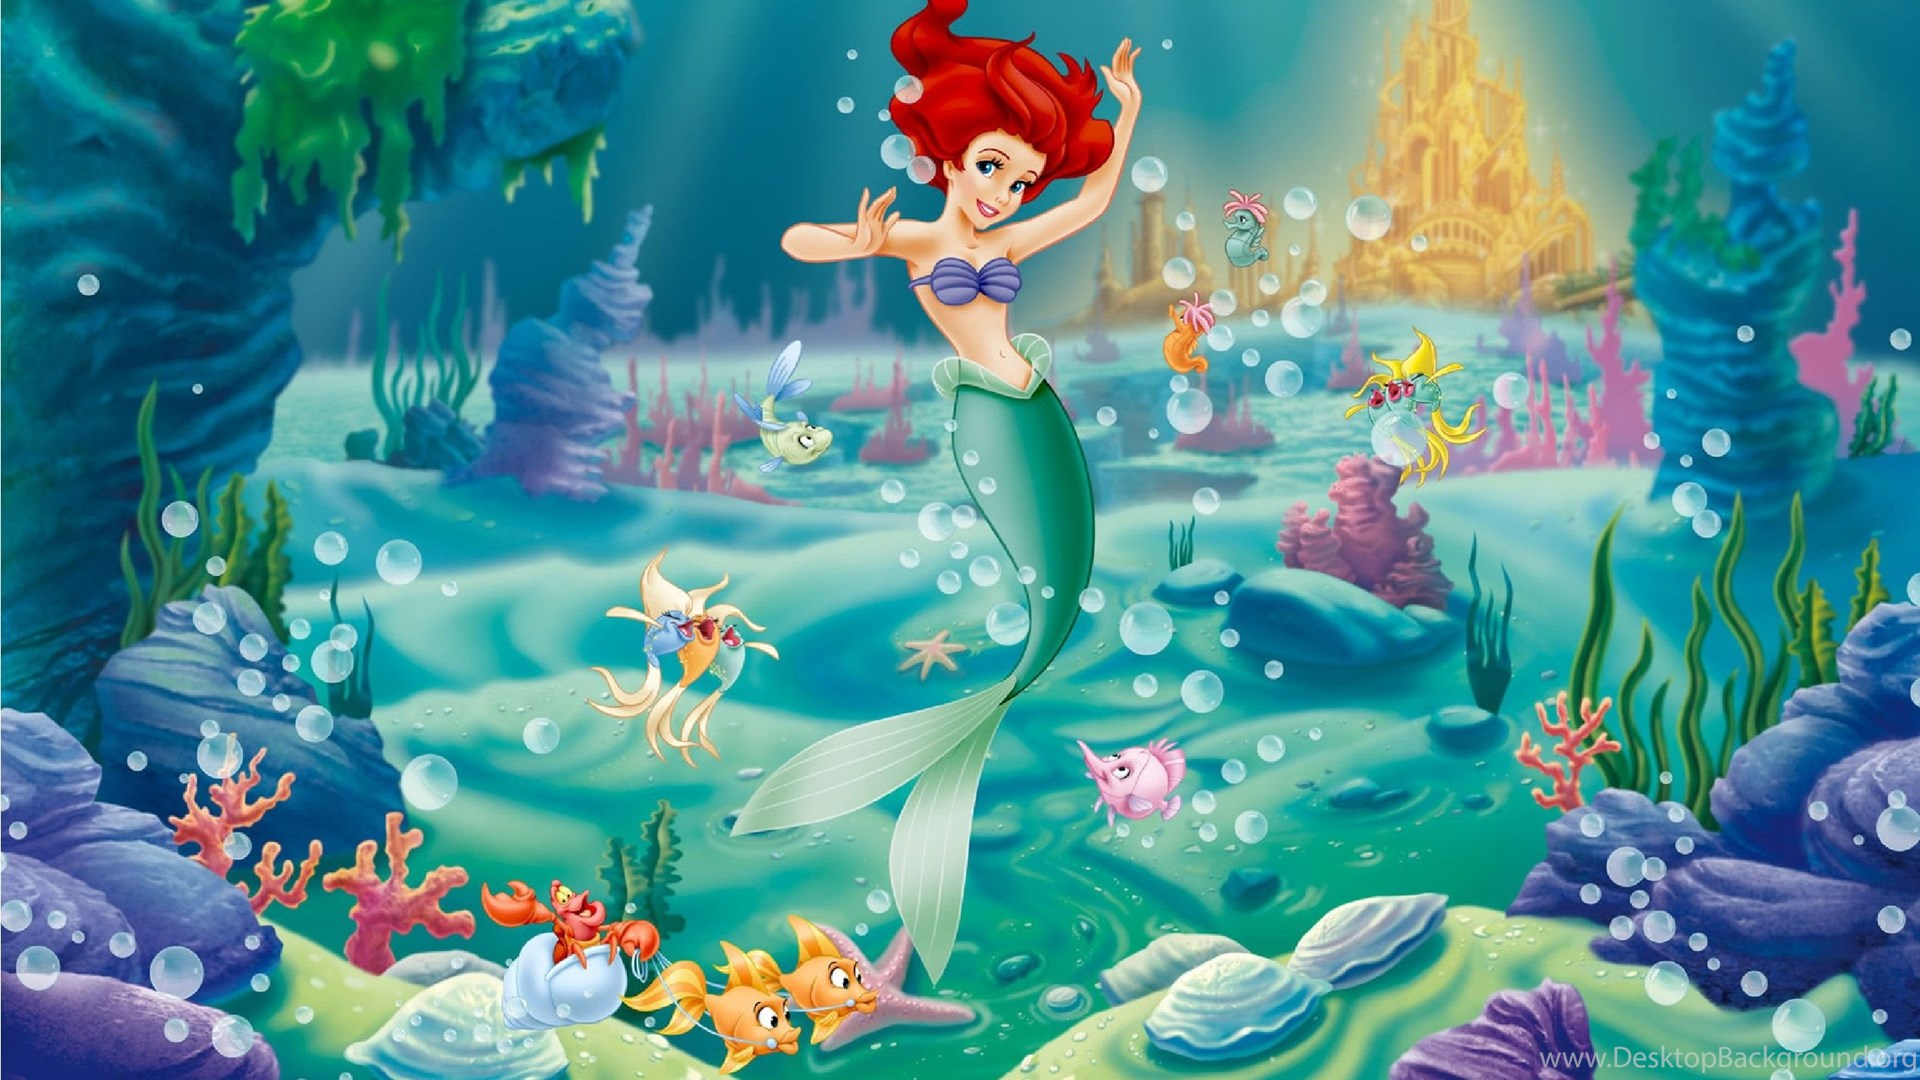 The Little Mermaid Wallpapers Pictures 39 Hd Wallpaper Backgrounds Desktop Background